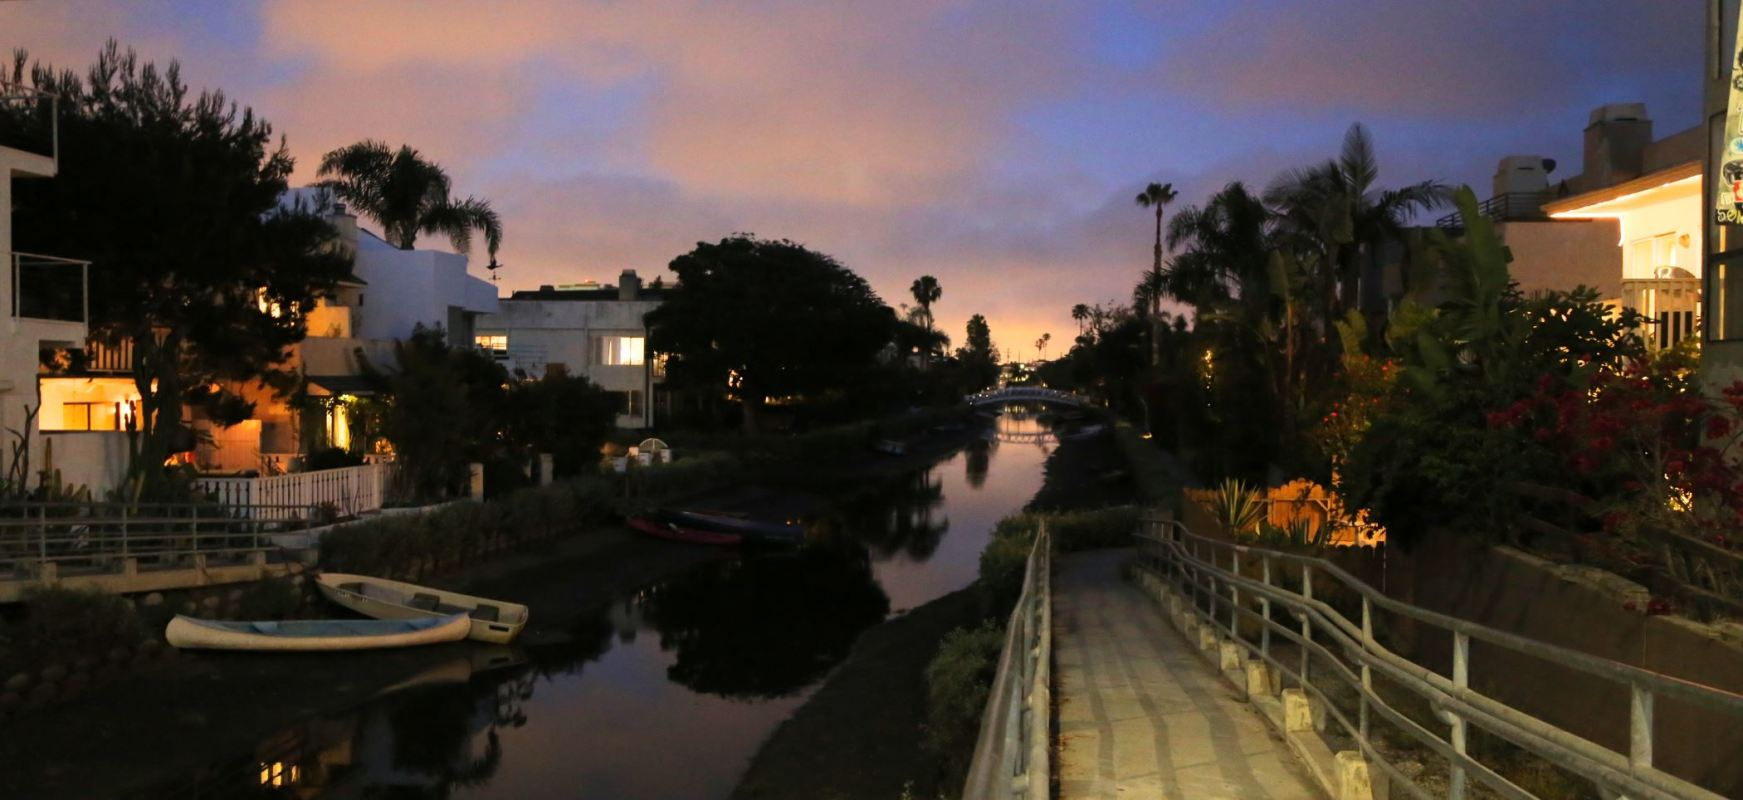 The Most Romantic Date Spots in Venice, CA